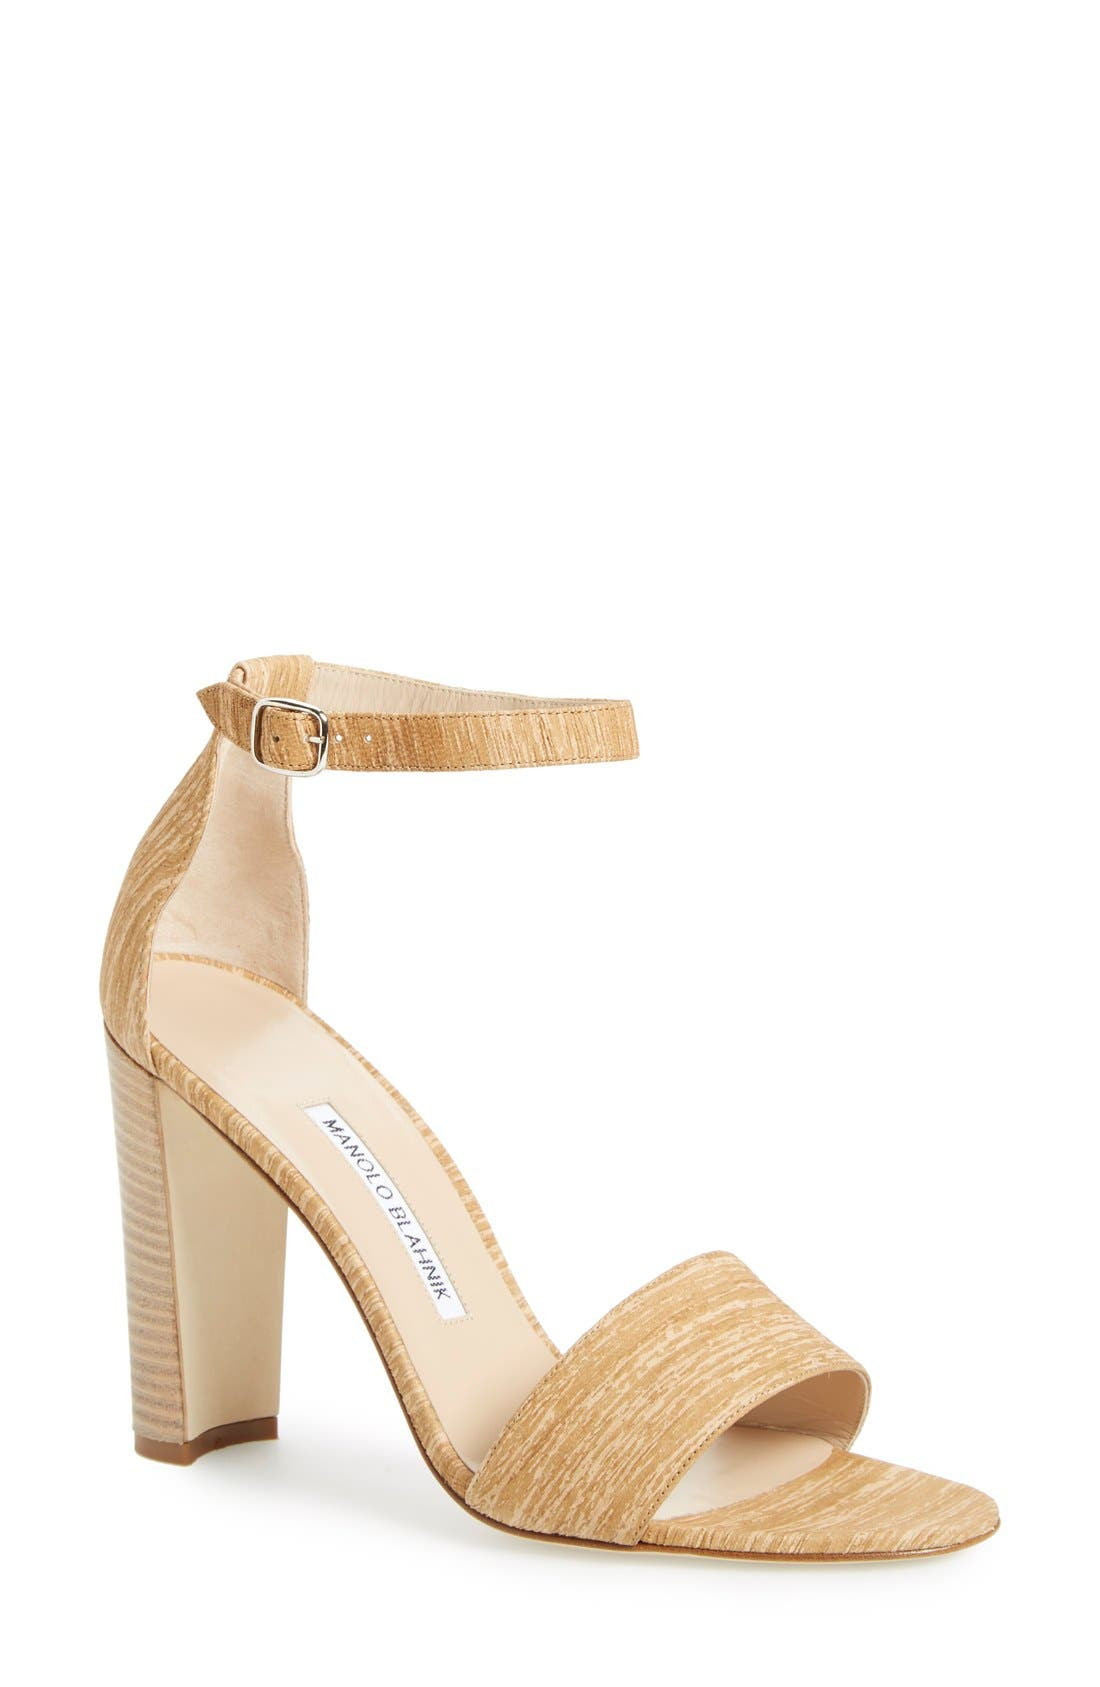 MANOLO BLAHNIK 'Lauratopri' Sandal, Main, color, 250